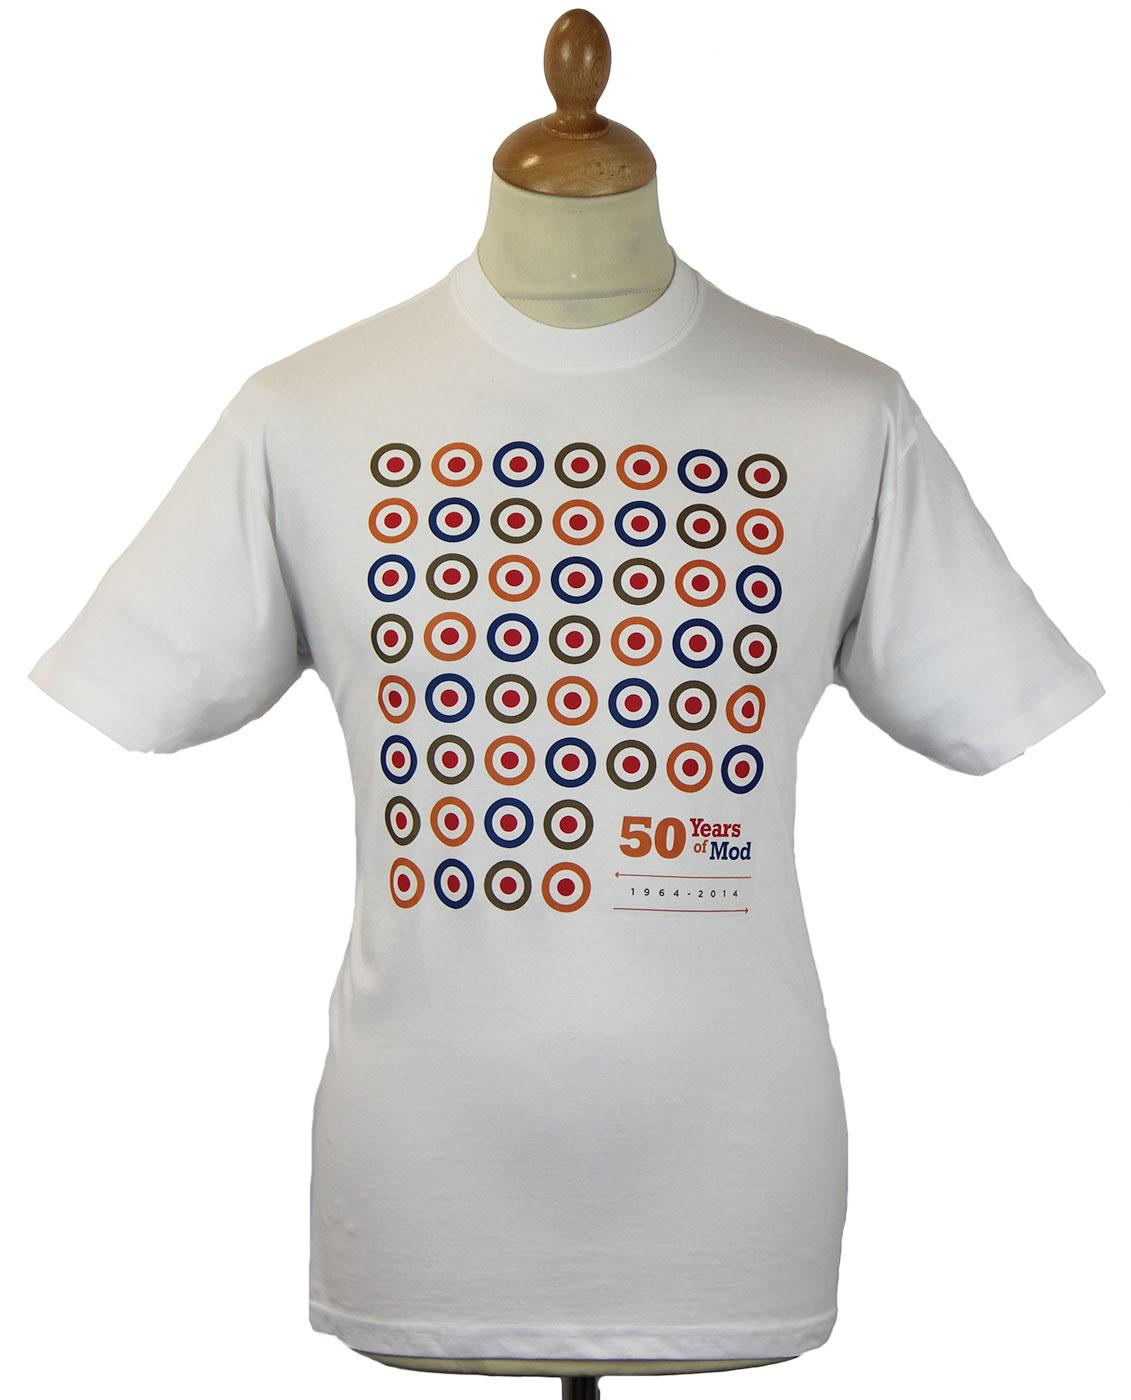 50 Mod Targets STOMP Mods 50th Anniversary T-Shirt